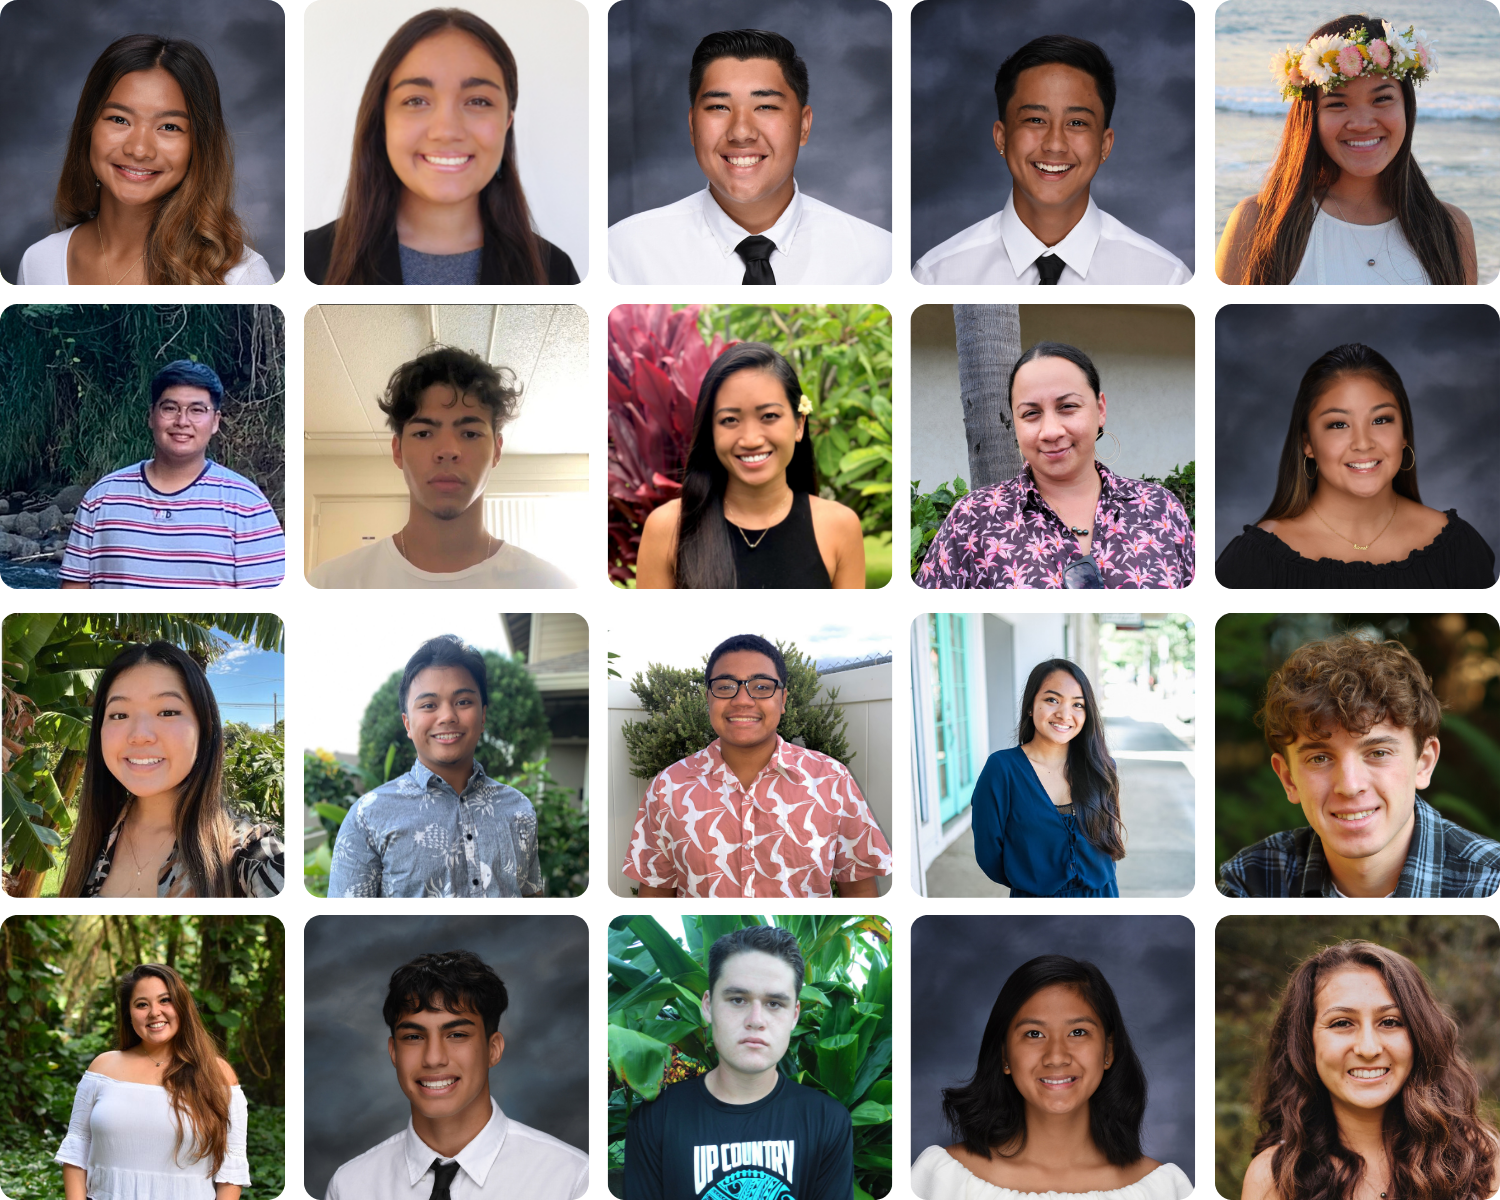 Maui County Federal Credit Union Awards $20,000 in College Scholarships